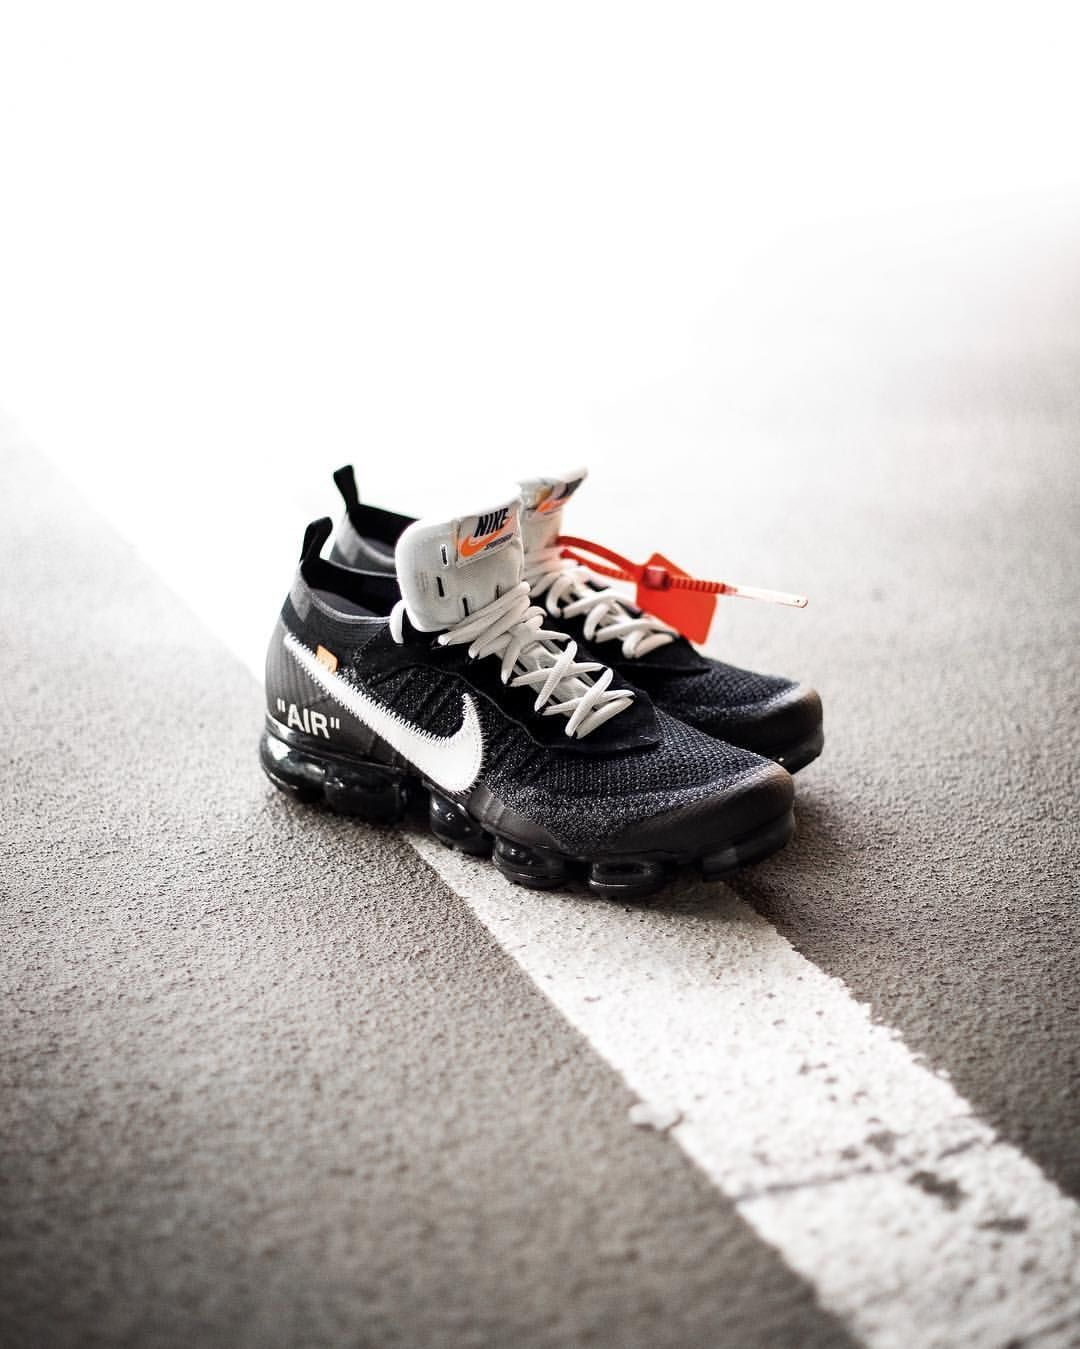 huge discount 52779 97725 OFF-WHITE x Nike Air Vapormax Flyknit. OFF-WHITE x Nike Air Vapormax  Flyknit Curvy Petite Fashion, Running Shoes ...